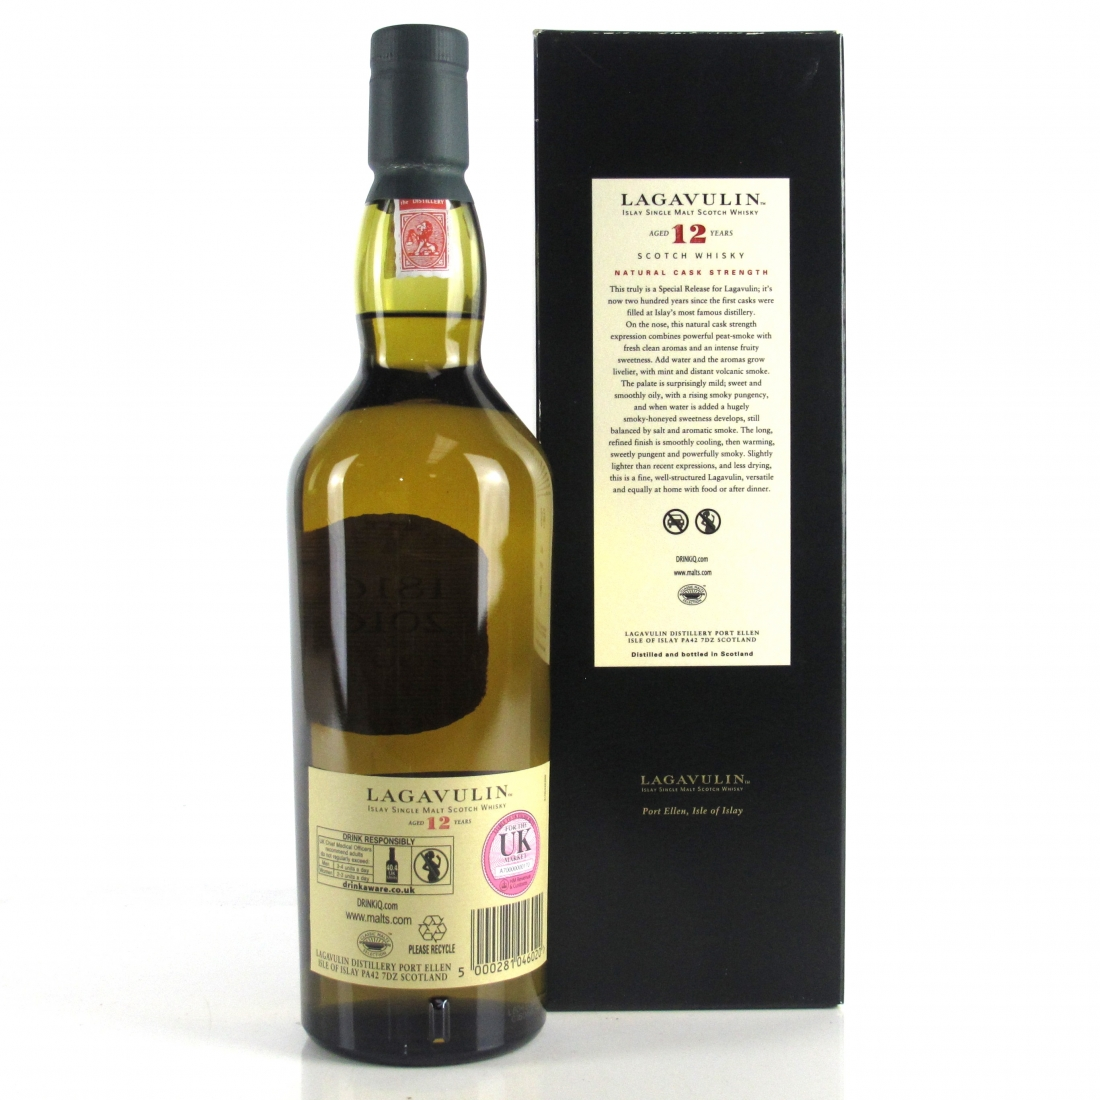 Lagavulin 12 Year Old 2016 Edition / Bicentenary